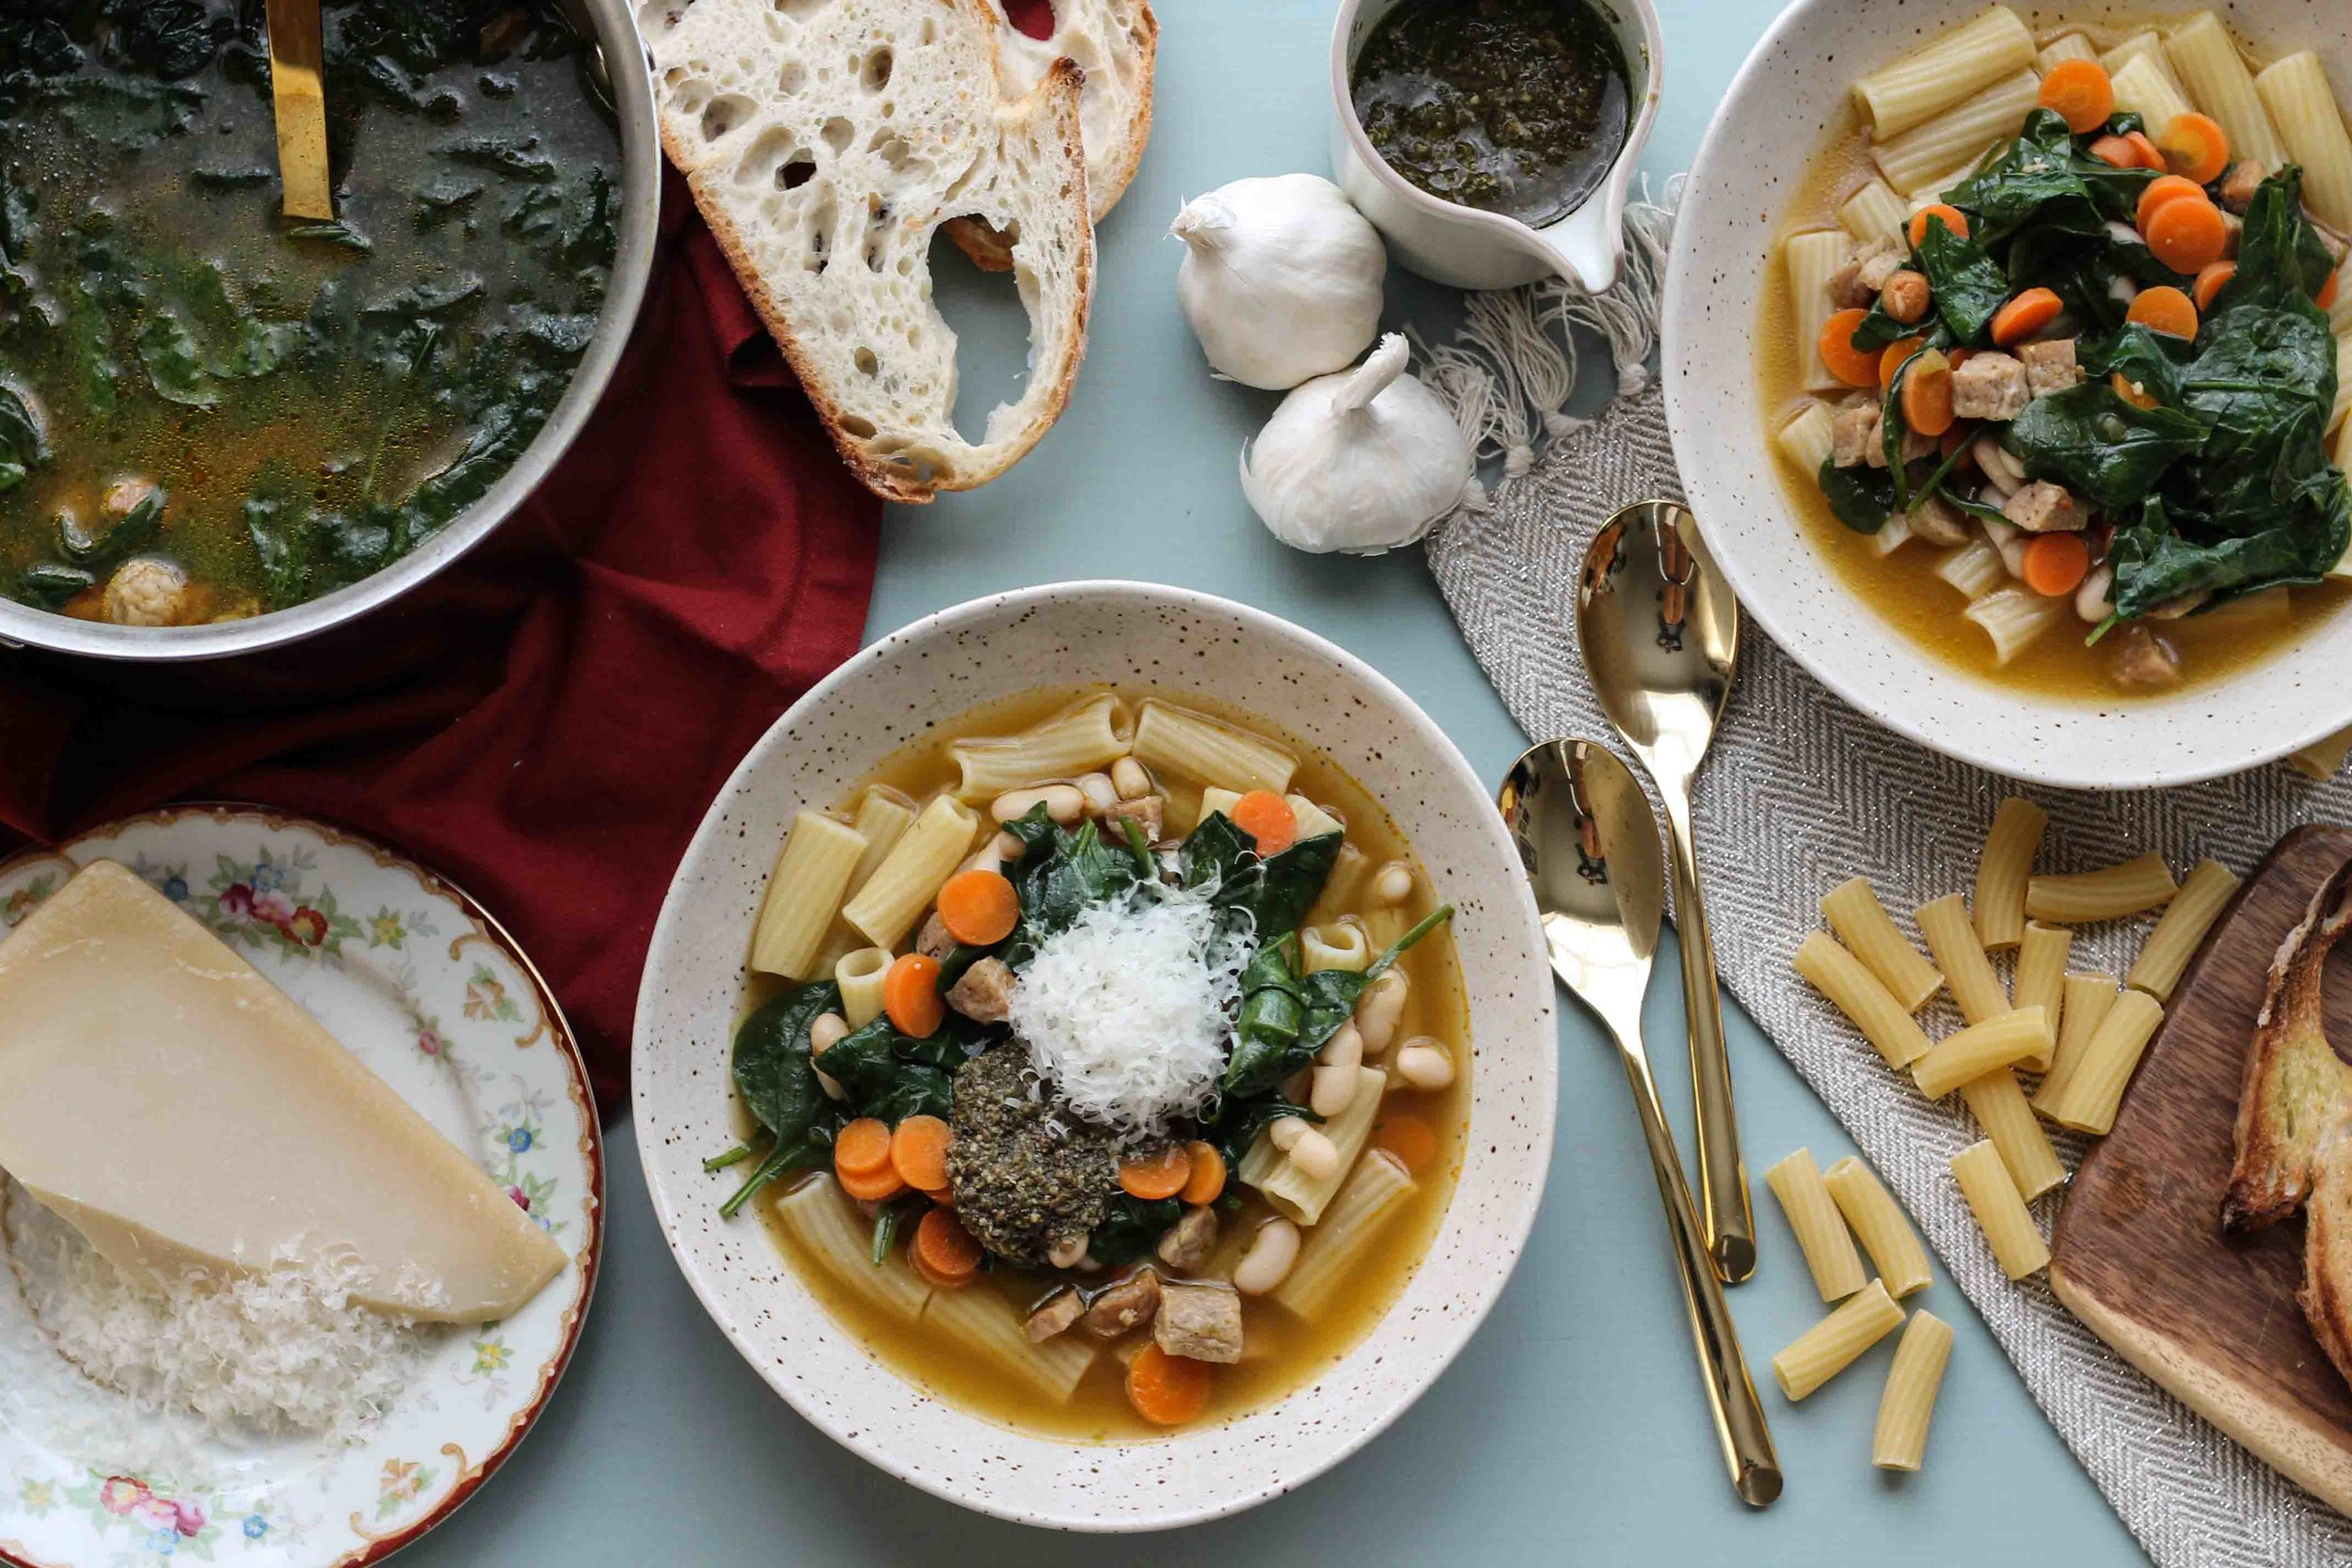 This quick and easy Italian Sausage & Pesto soup is the perfect weeknight winter meal. [ www.pedanticfoodie.com ]